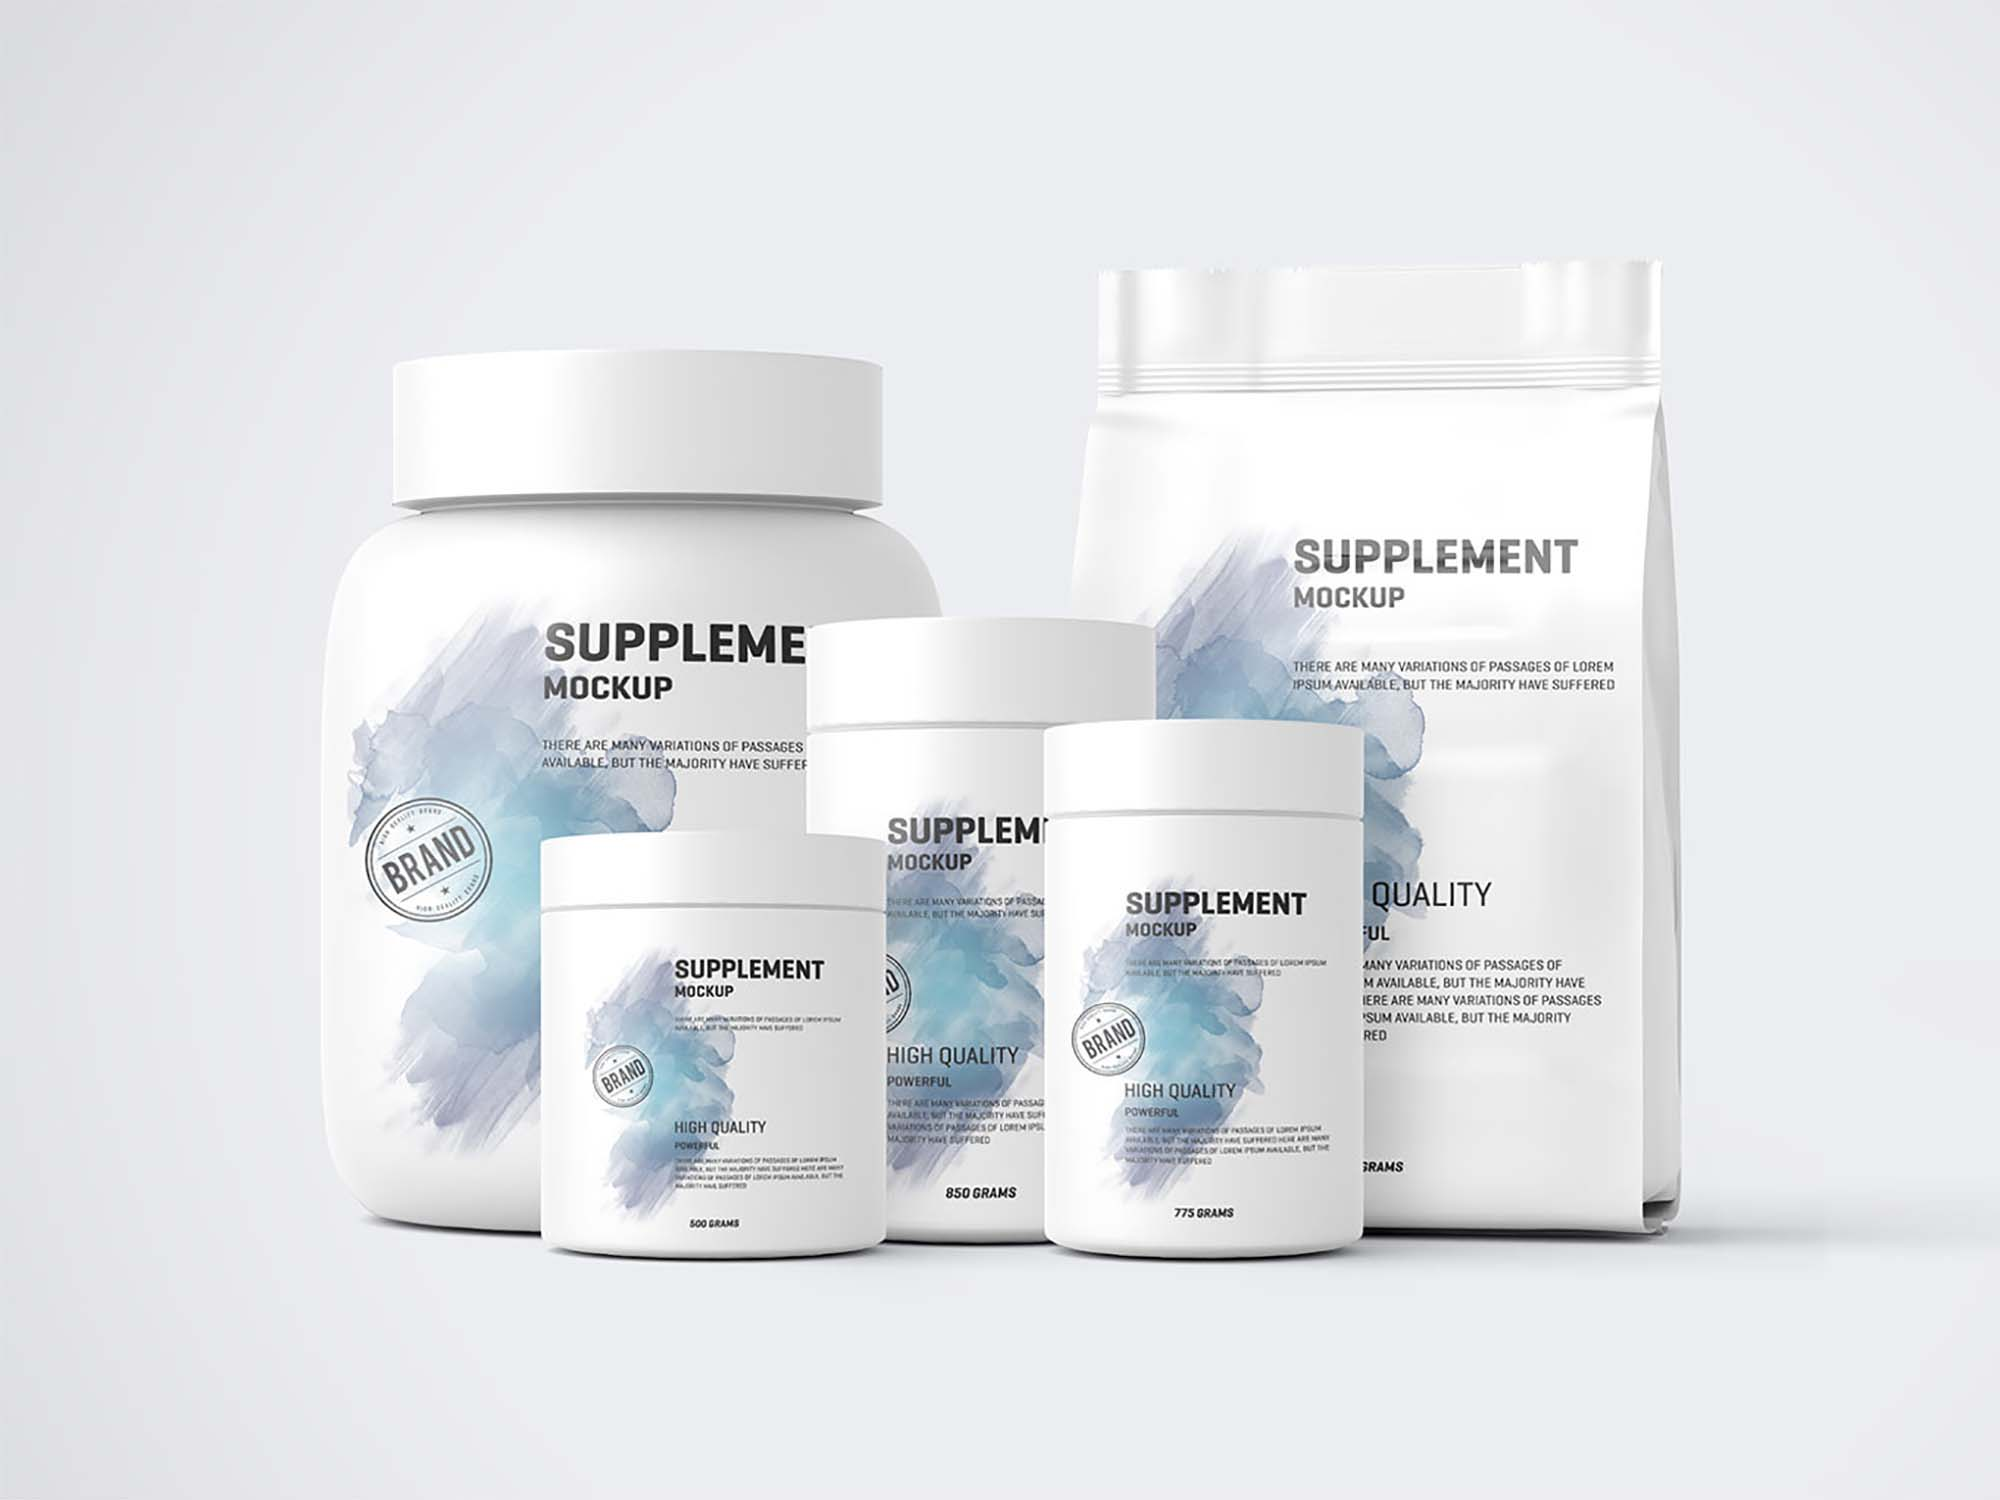 Protein Pack and Jar Supplements Mockup